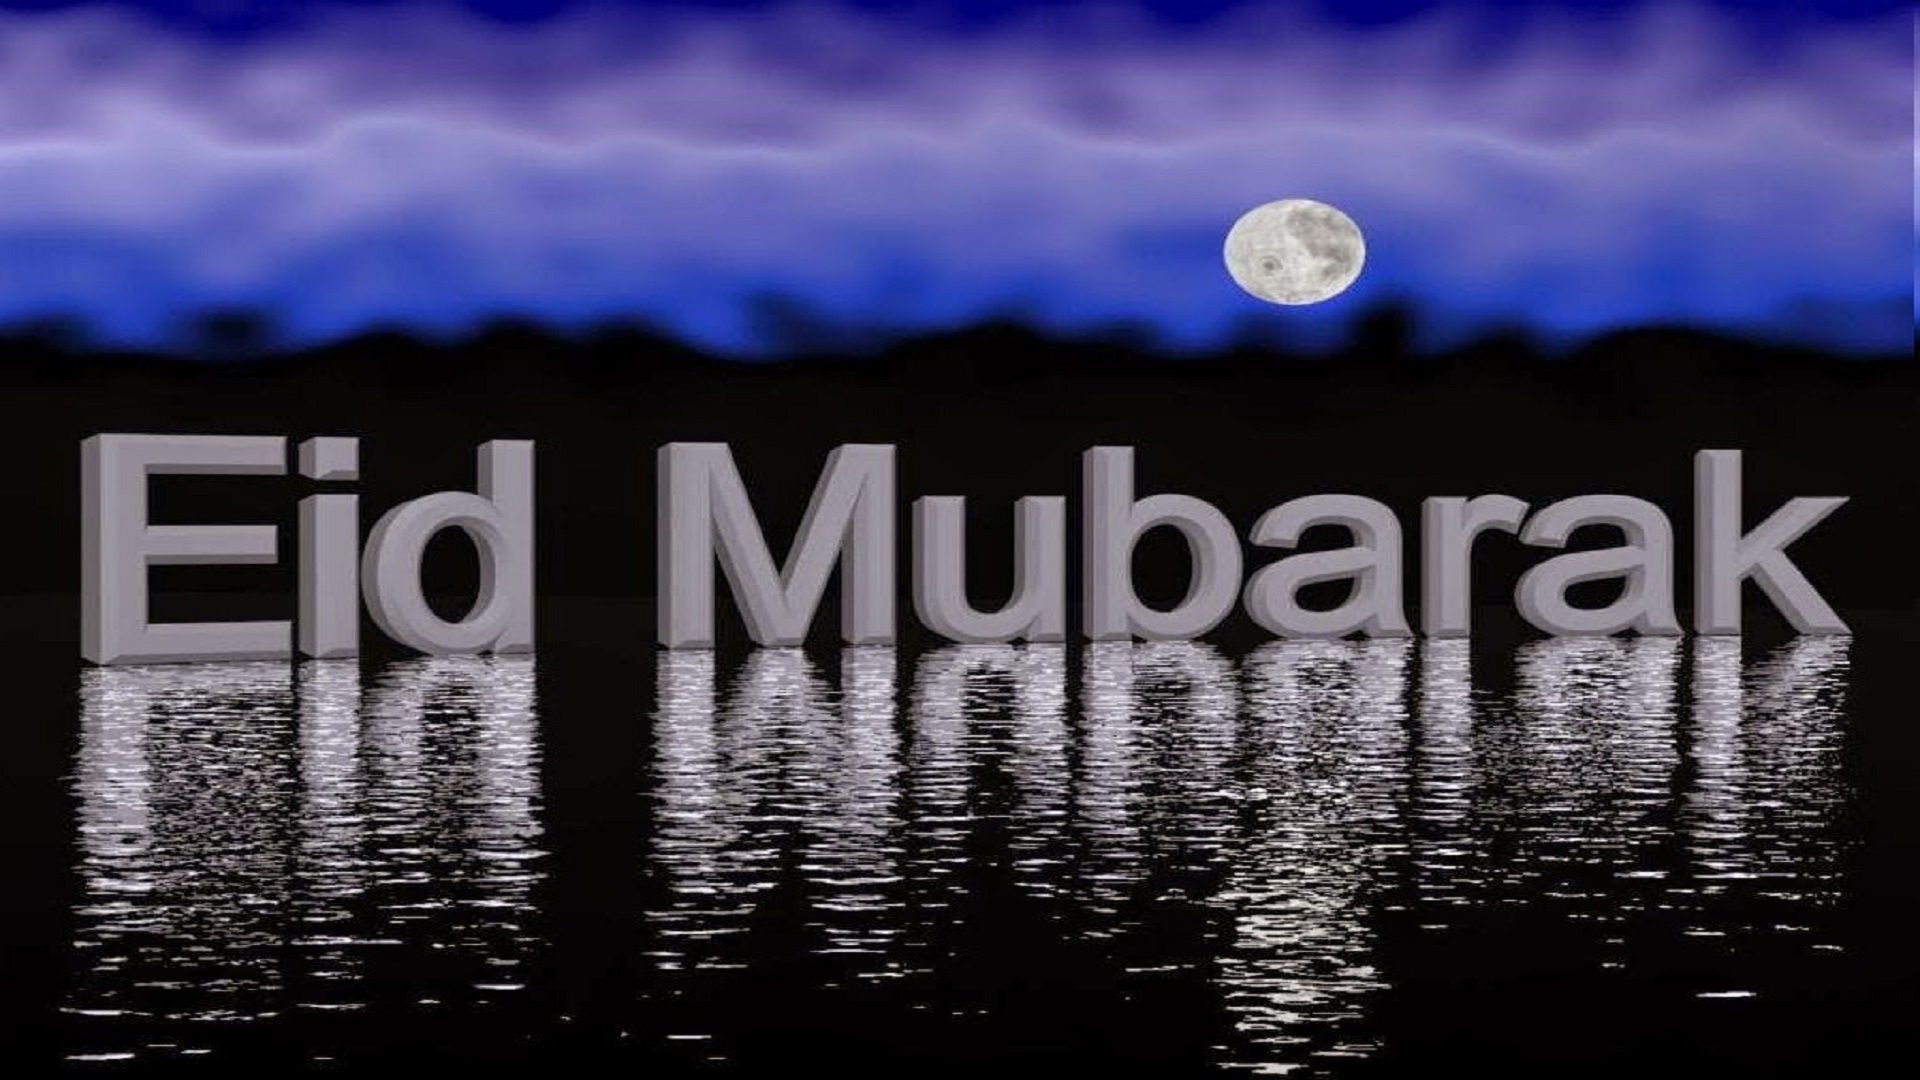 Fantastic Moon Eid Mubarak Wishes Download Free Hd Mobile Pics